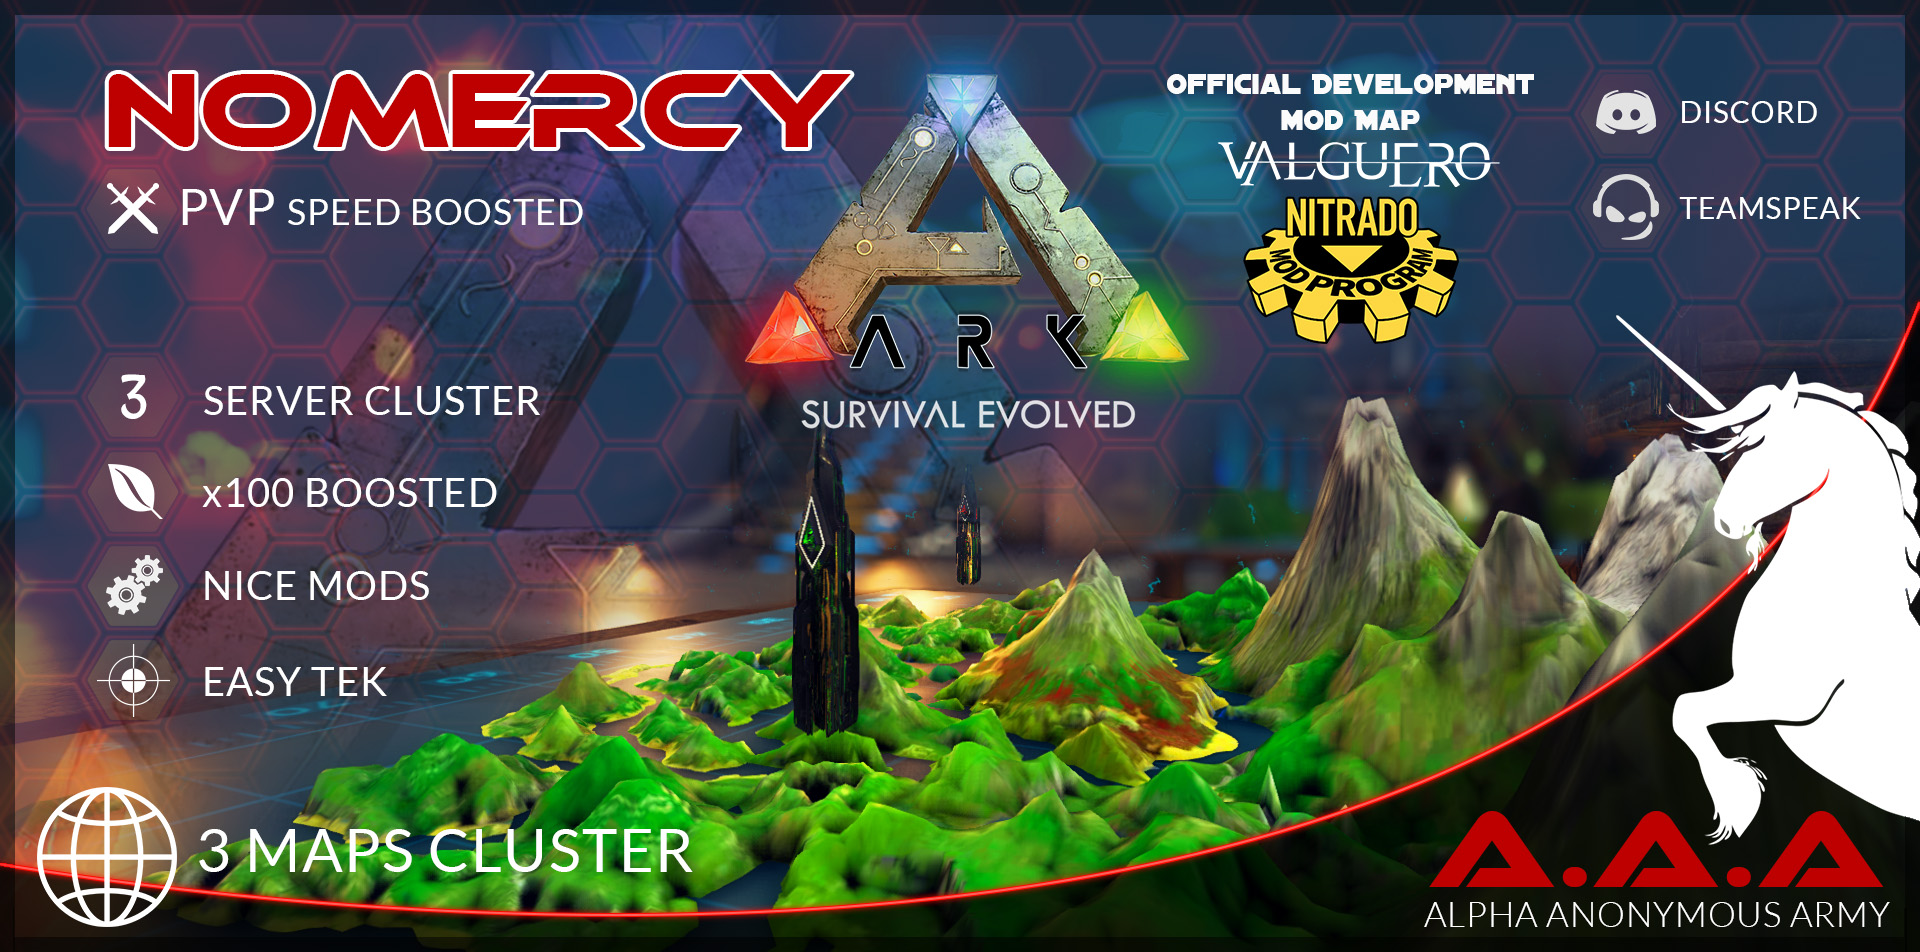 Steam Workshop :: A A A NoMercy Speed PVP